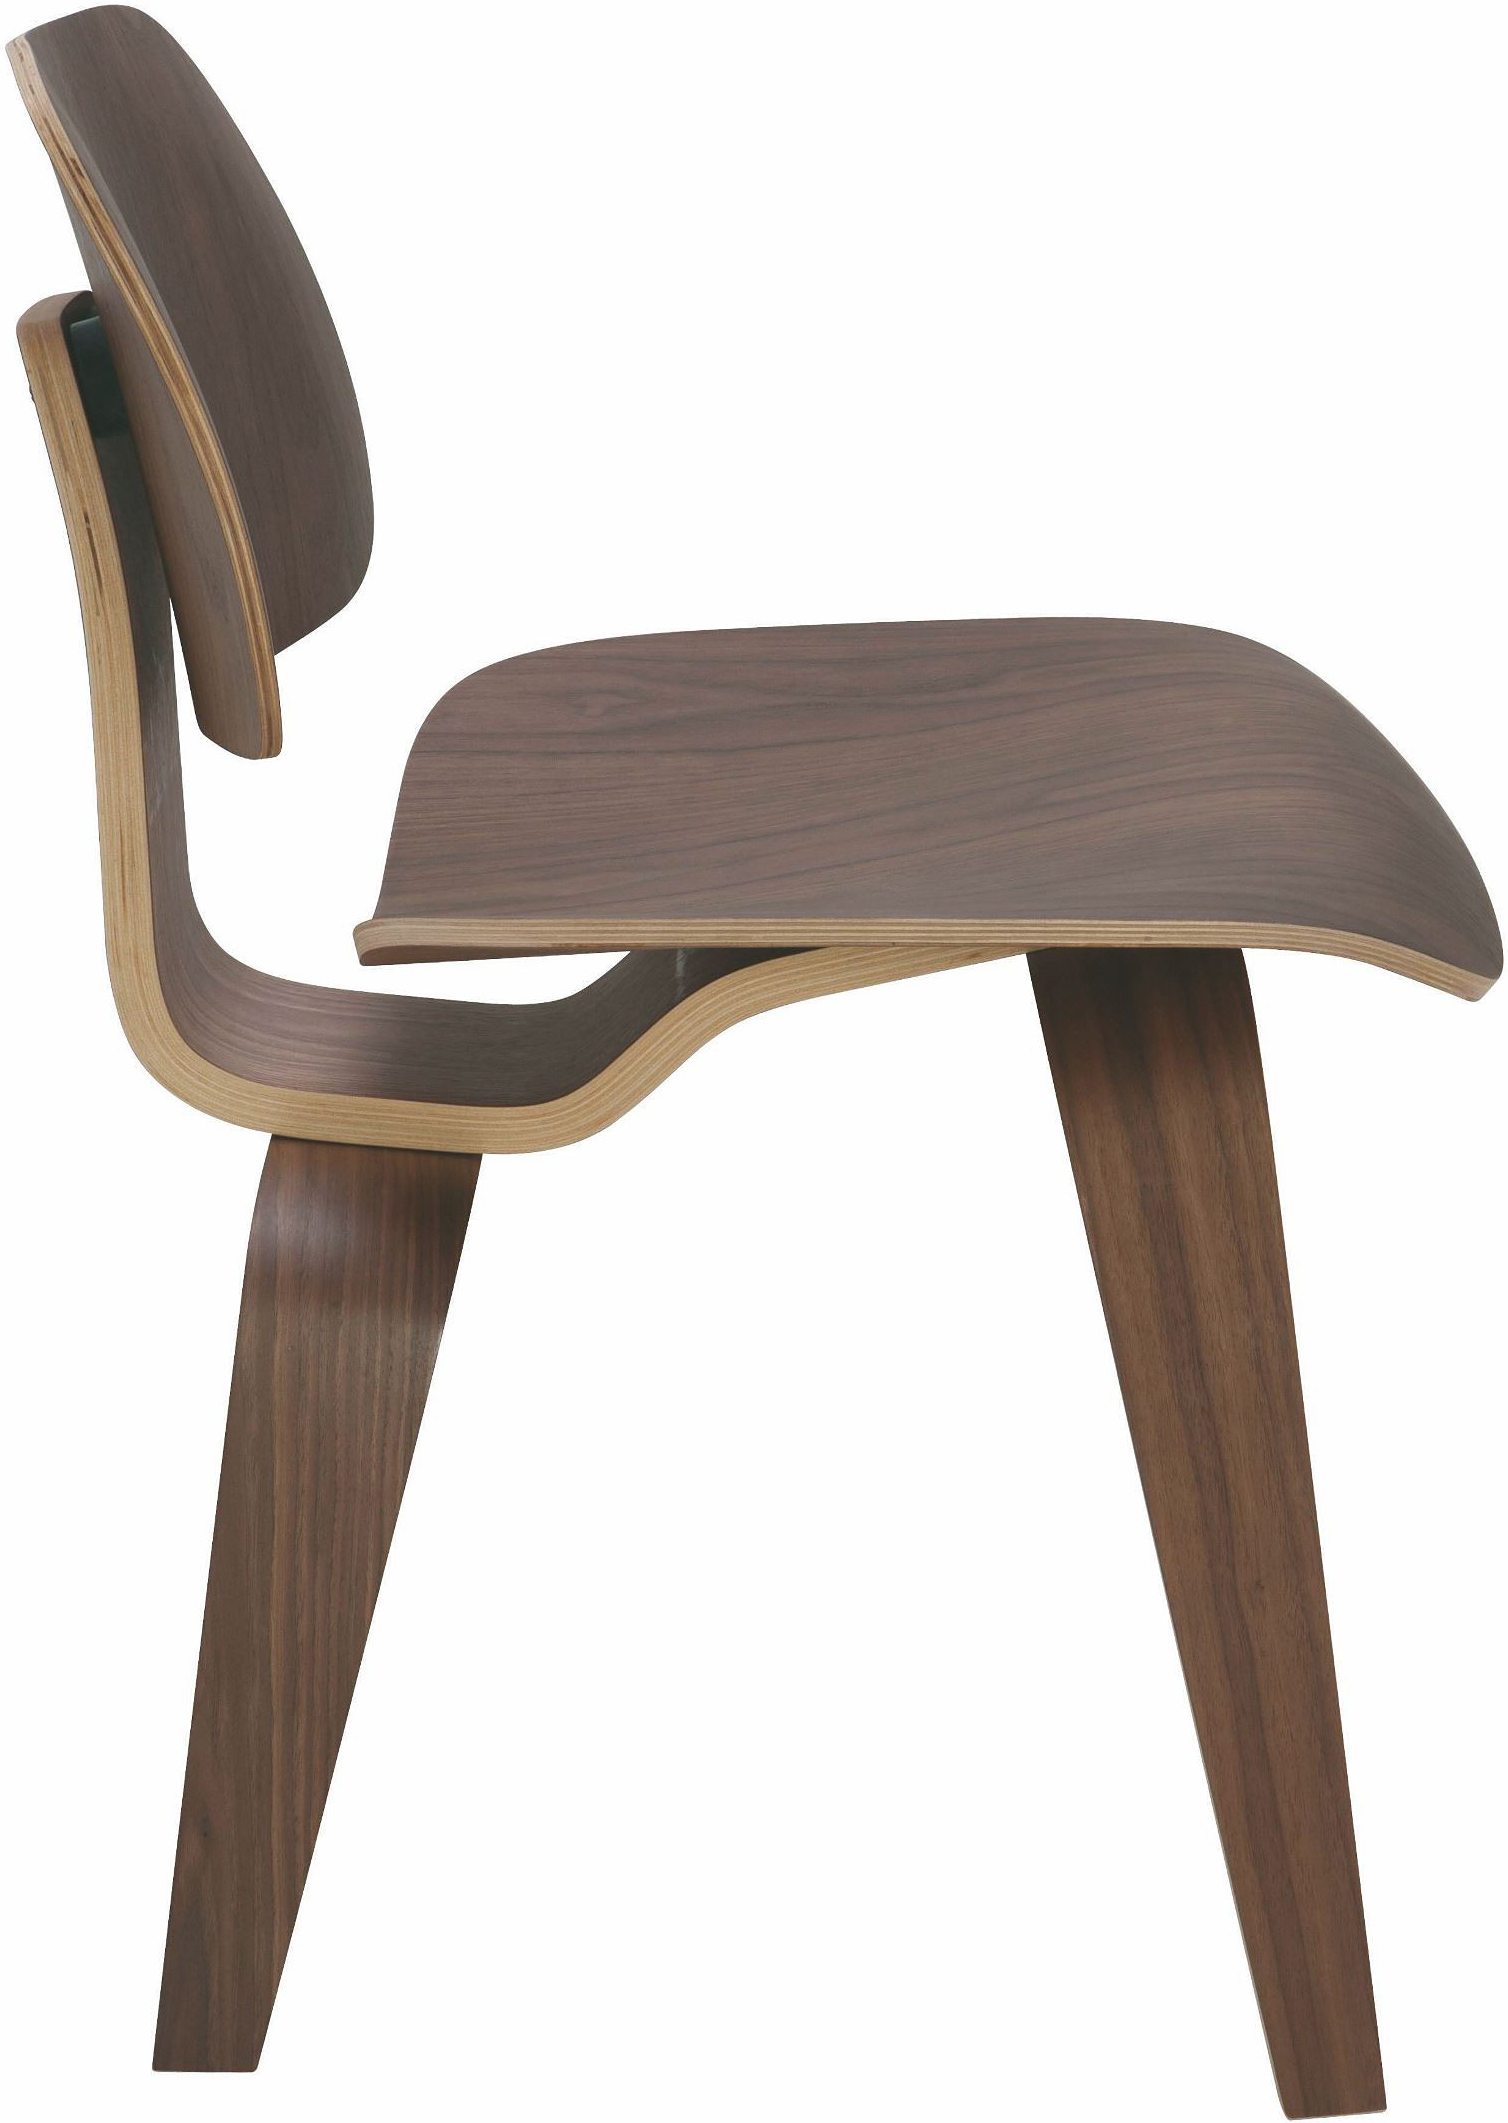 the nuevo sophie dining chair in walnut